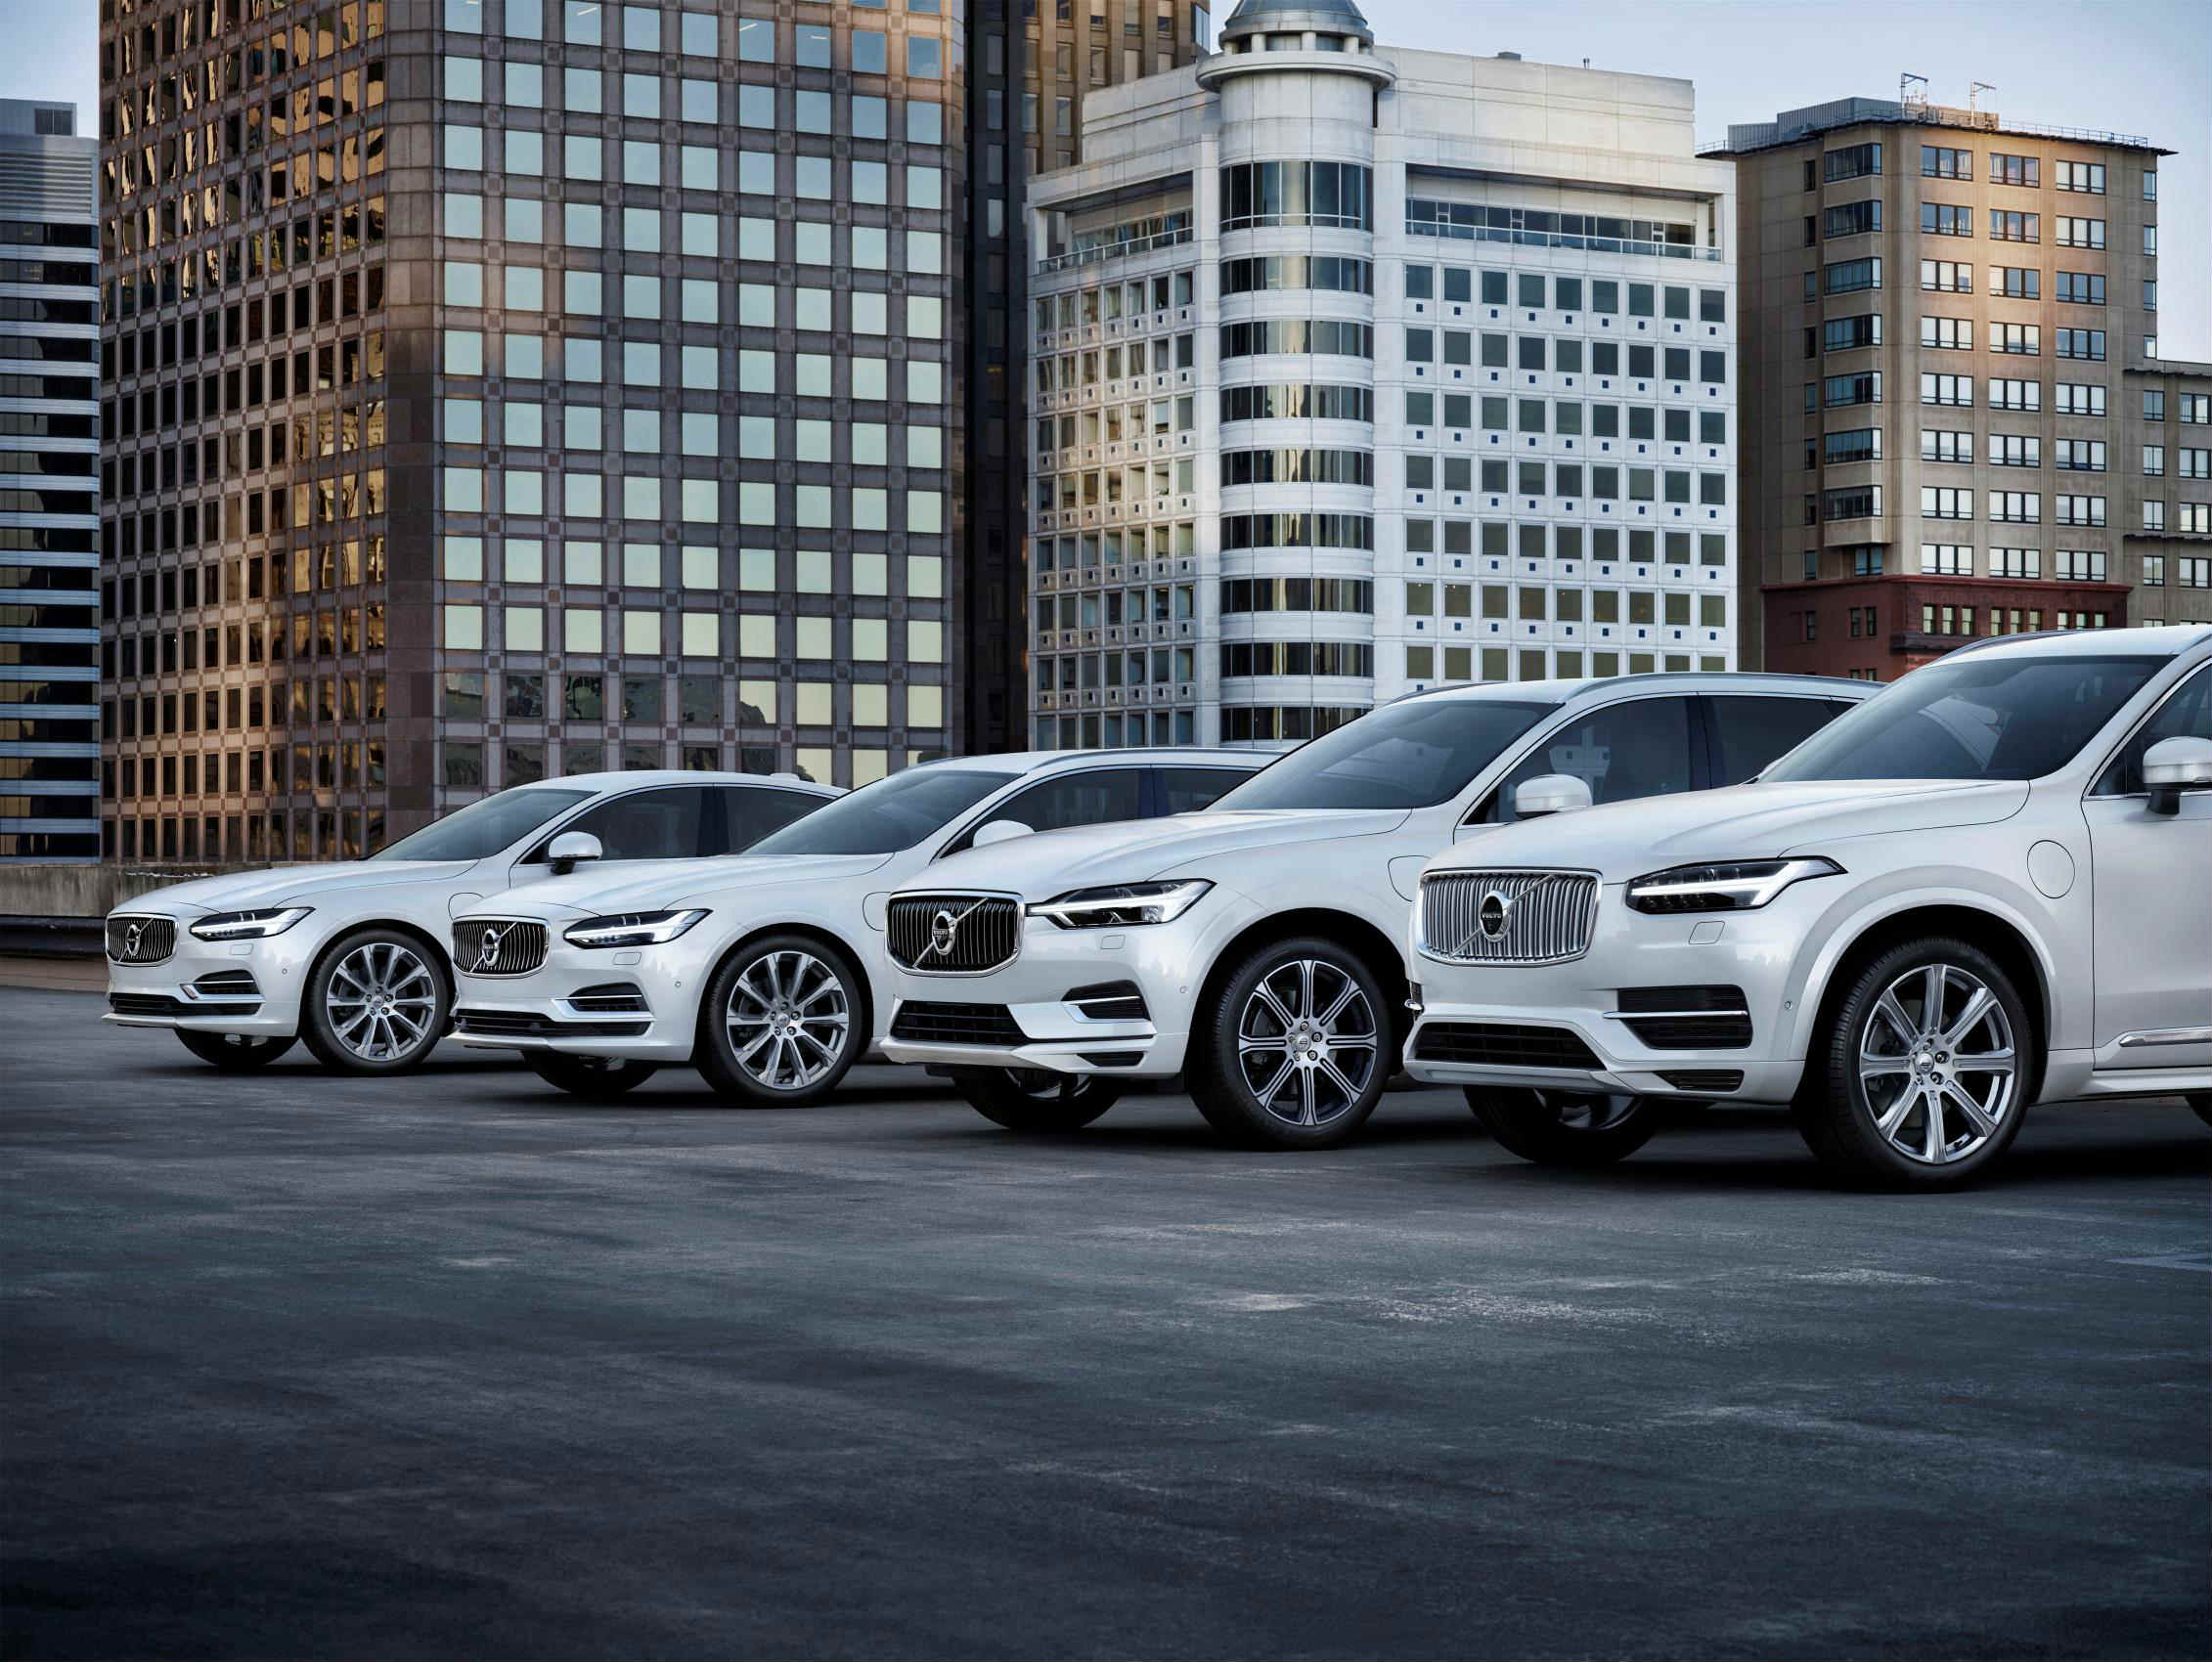 image of a range of white volvo cars parked on top floor of a multi storey car park